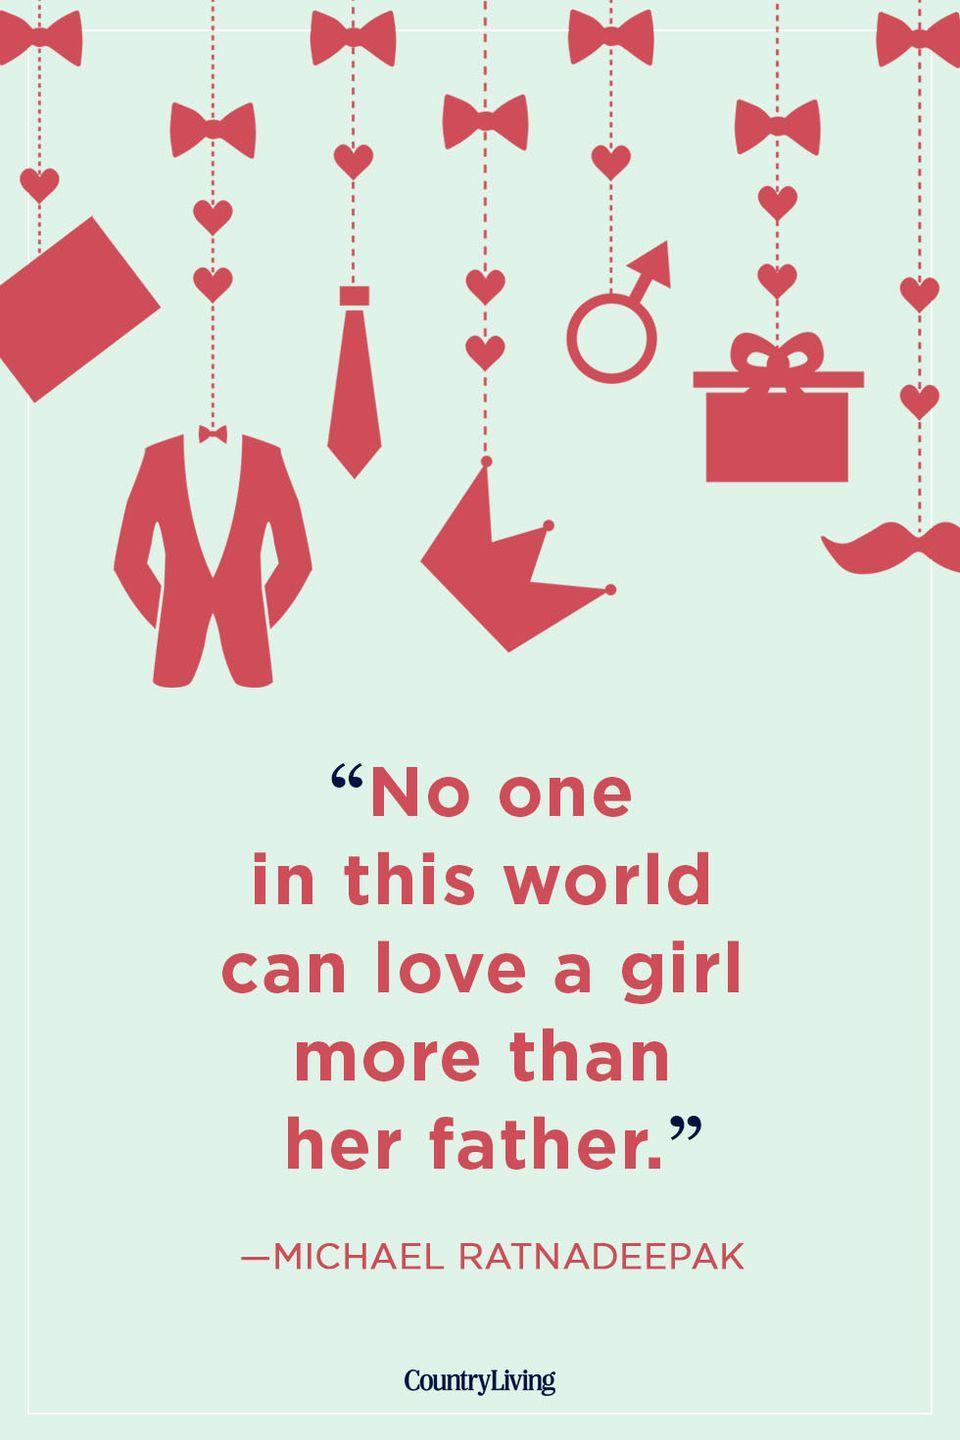 "<p>""No one in this world can love a girl more than her father.""</p>"